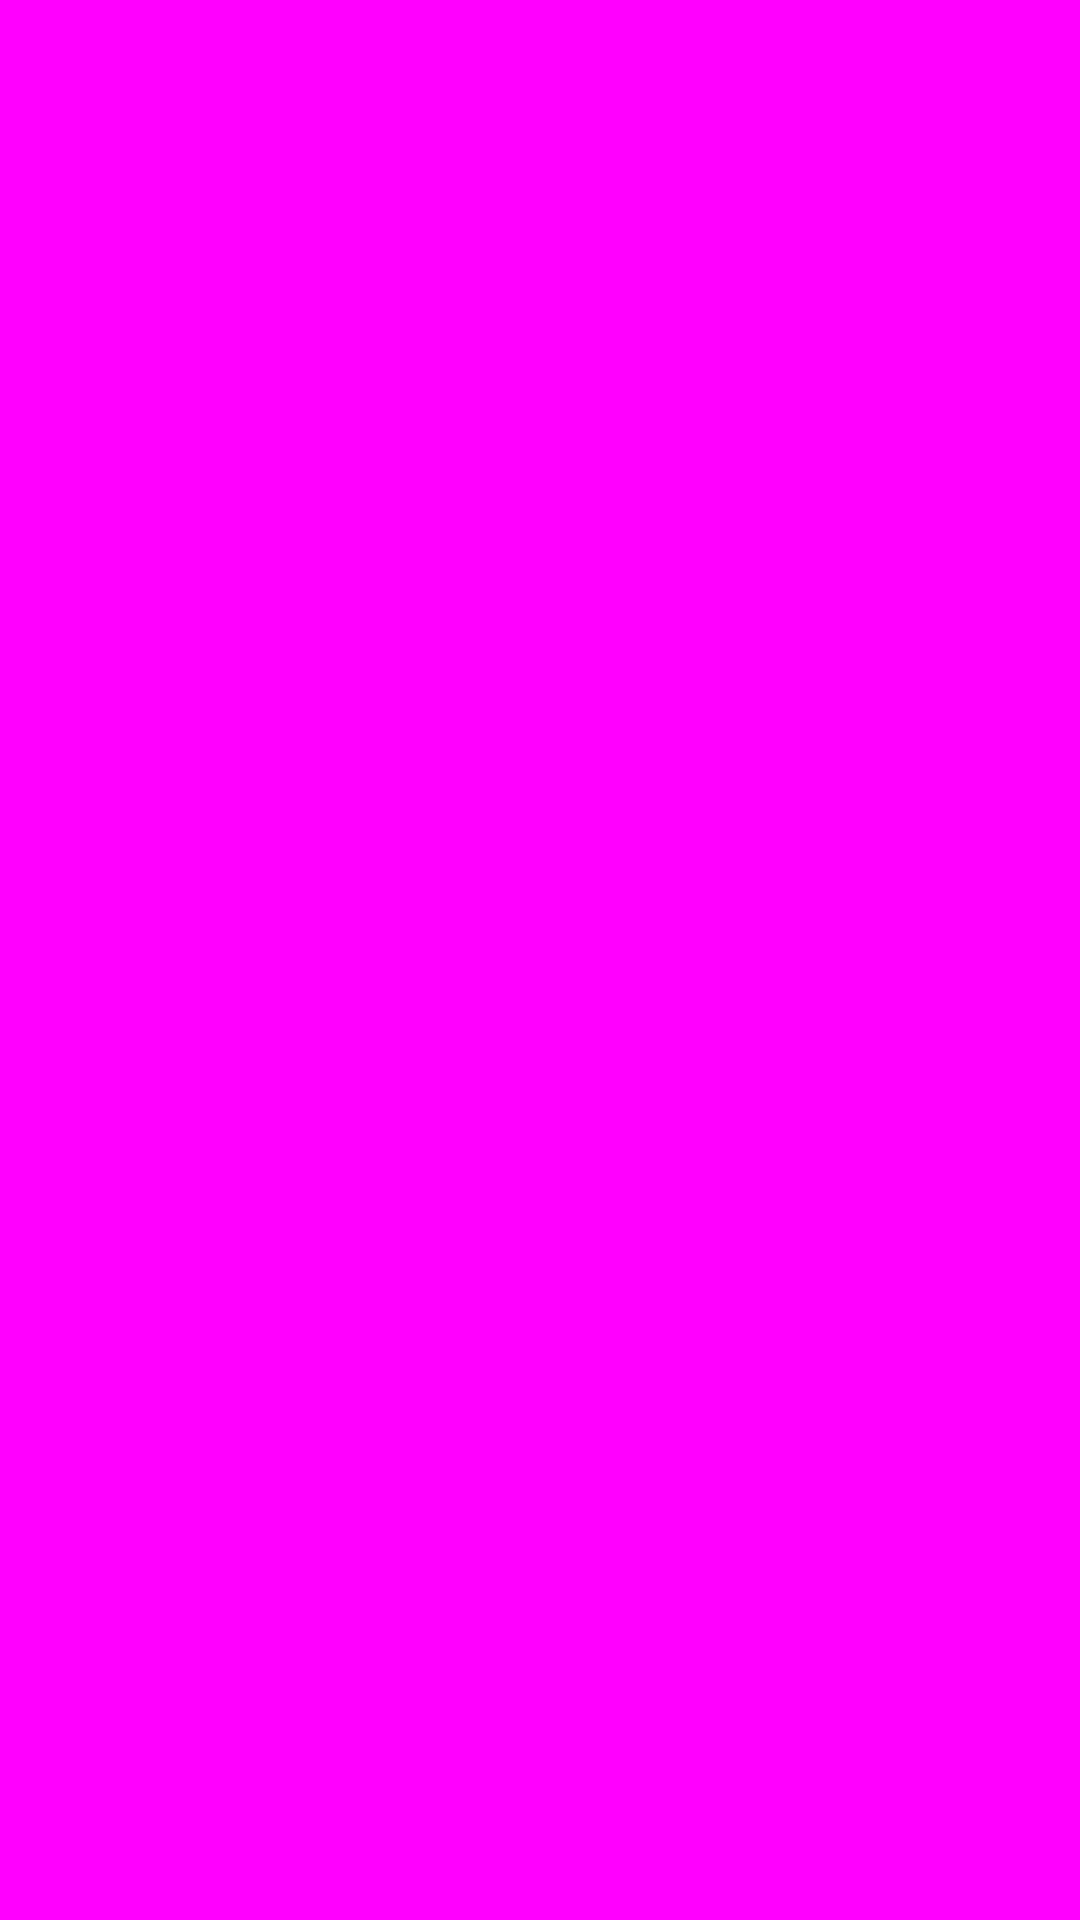 1080x1920 Fuchsia Solid Color Background